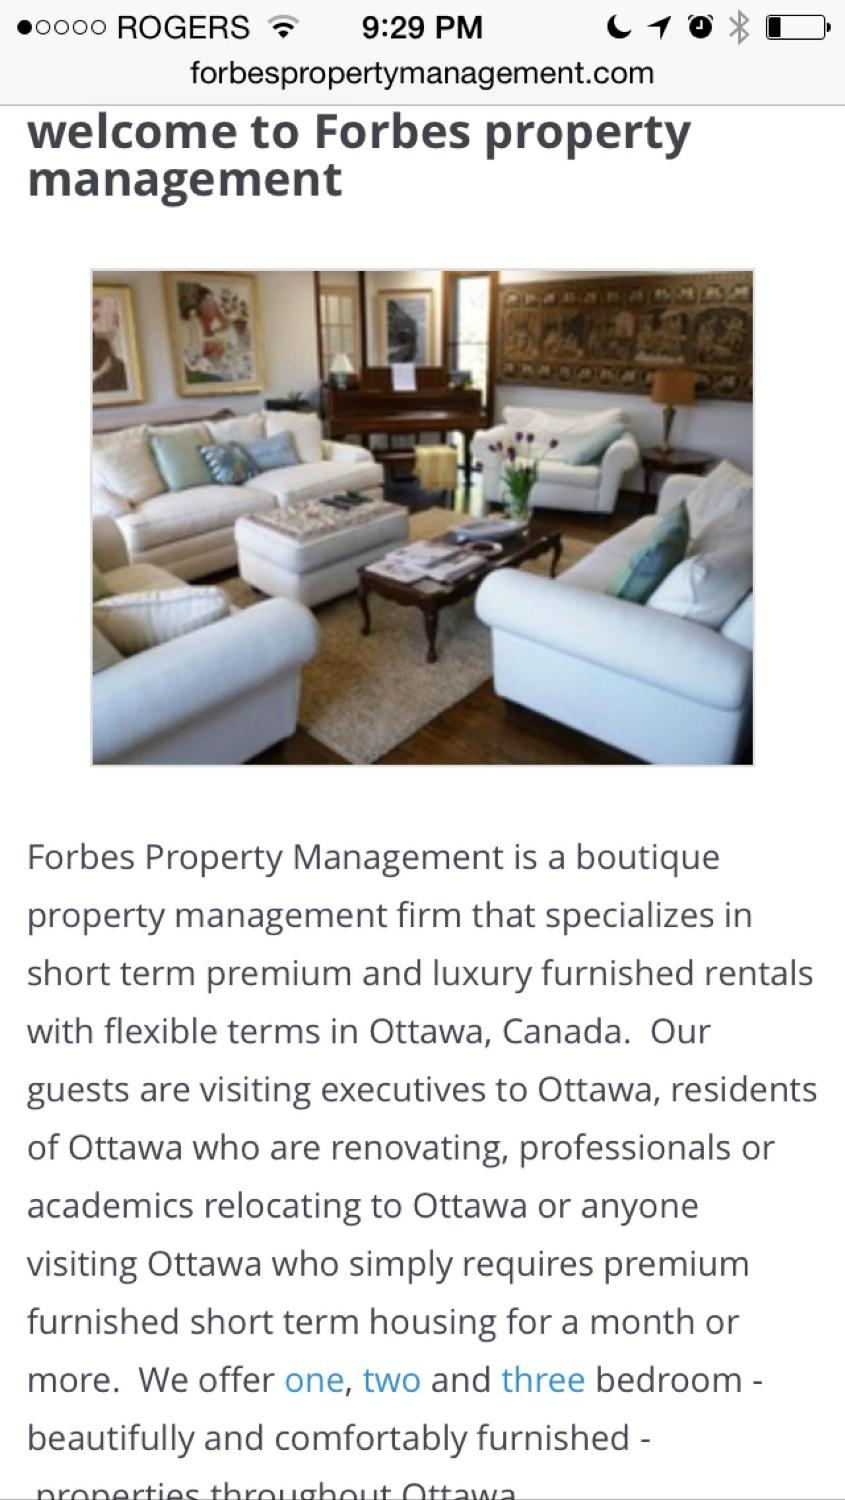 Best Forbes Property Management for sale in Ottawa, Ontario for 2018